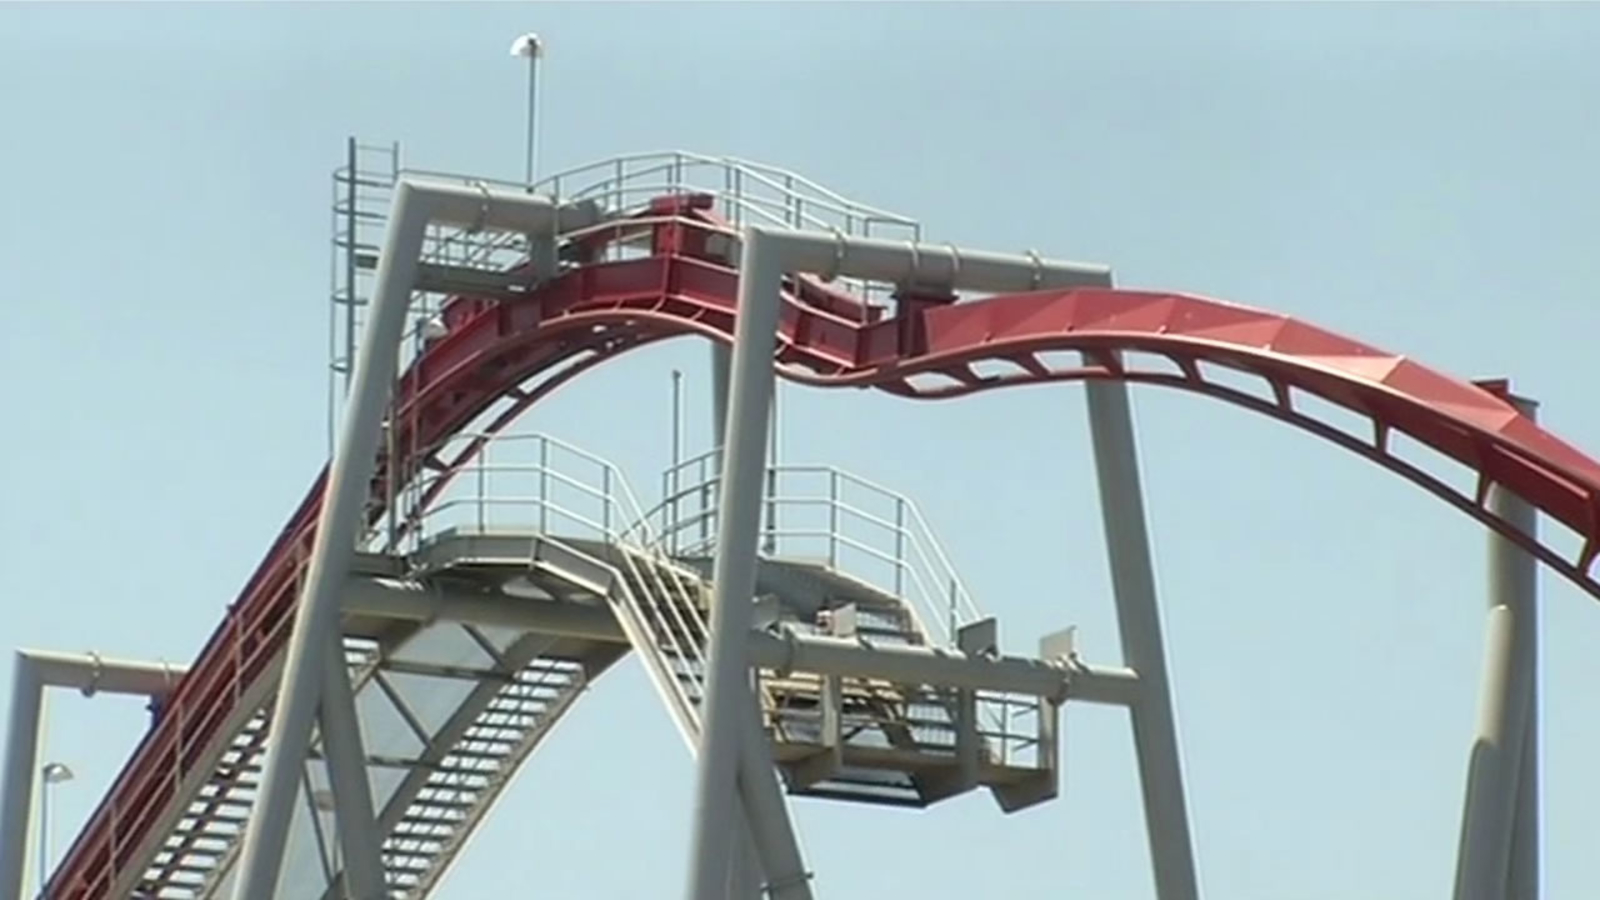 Roller coaster accident leaves 2 injured at Great America